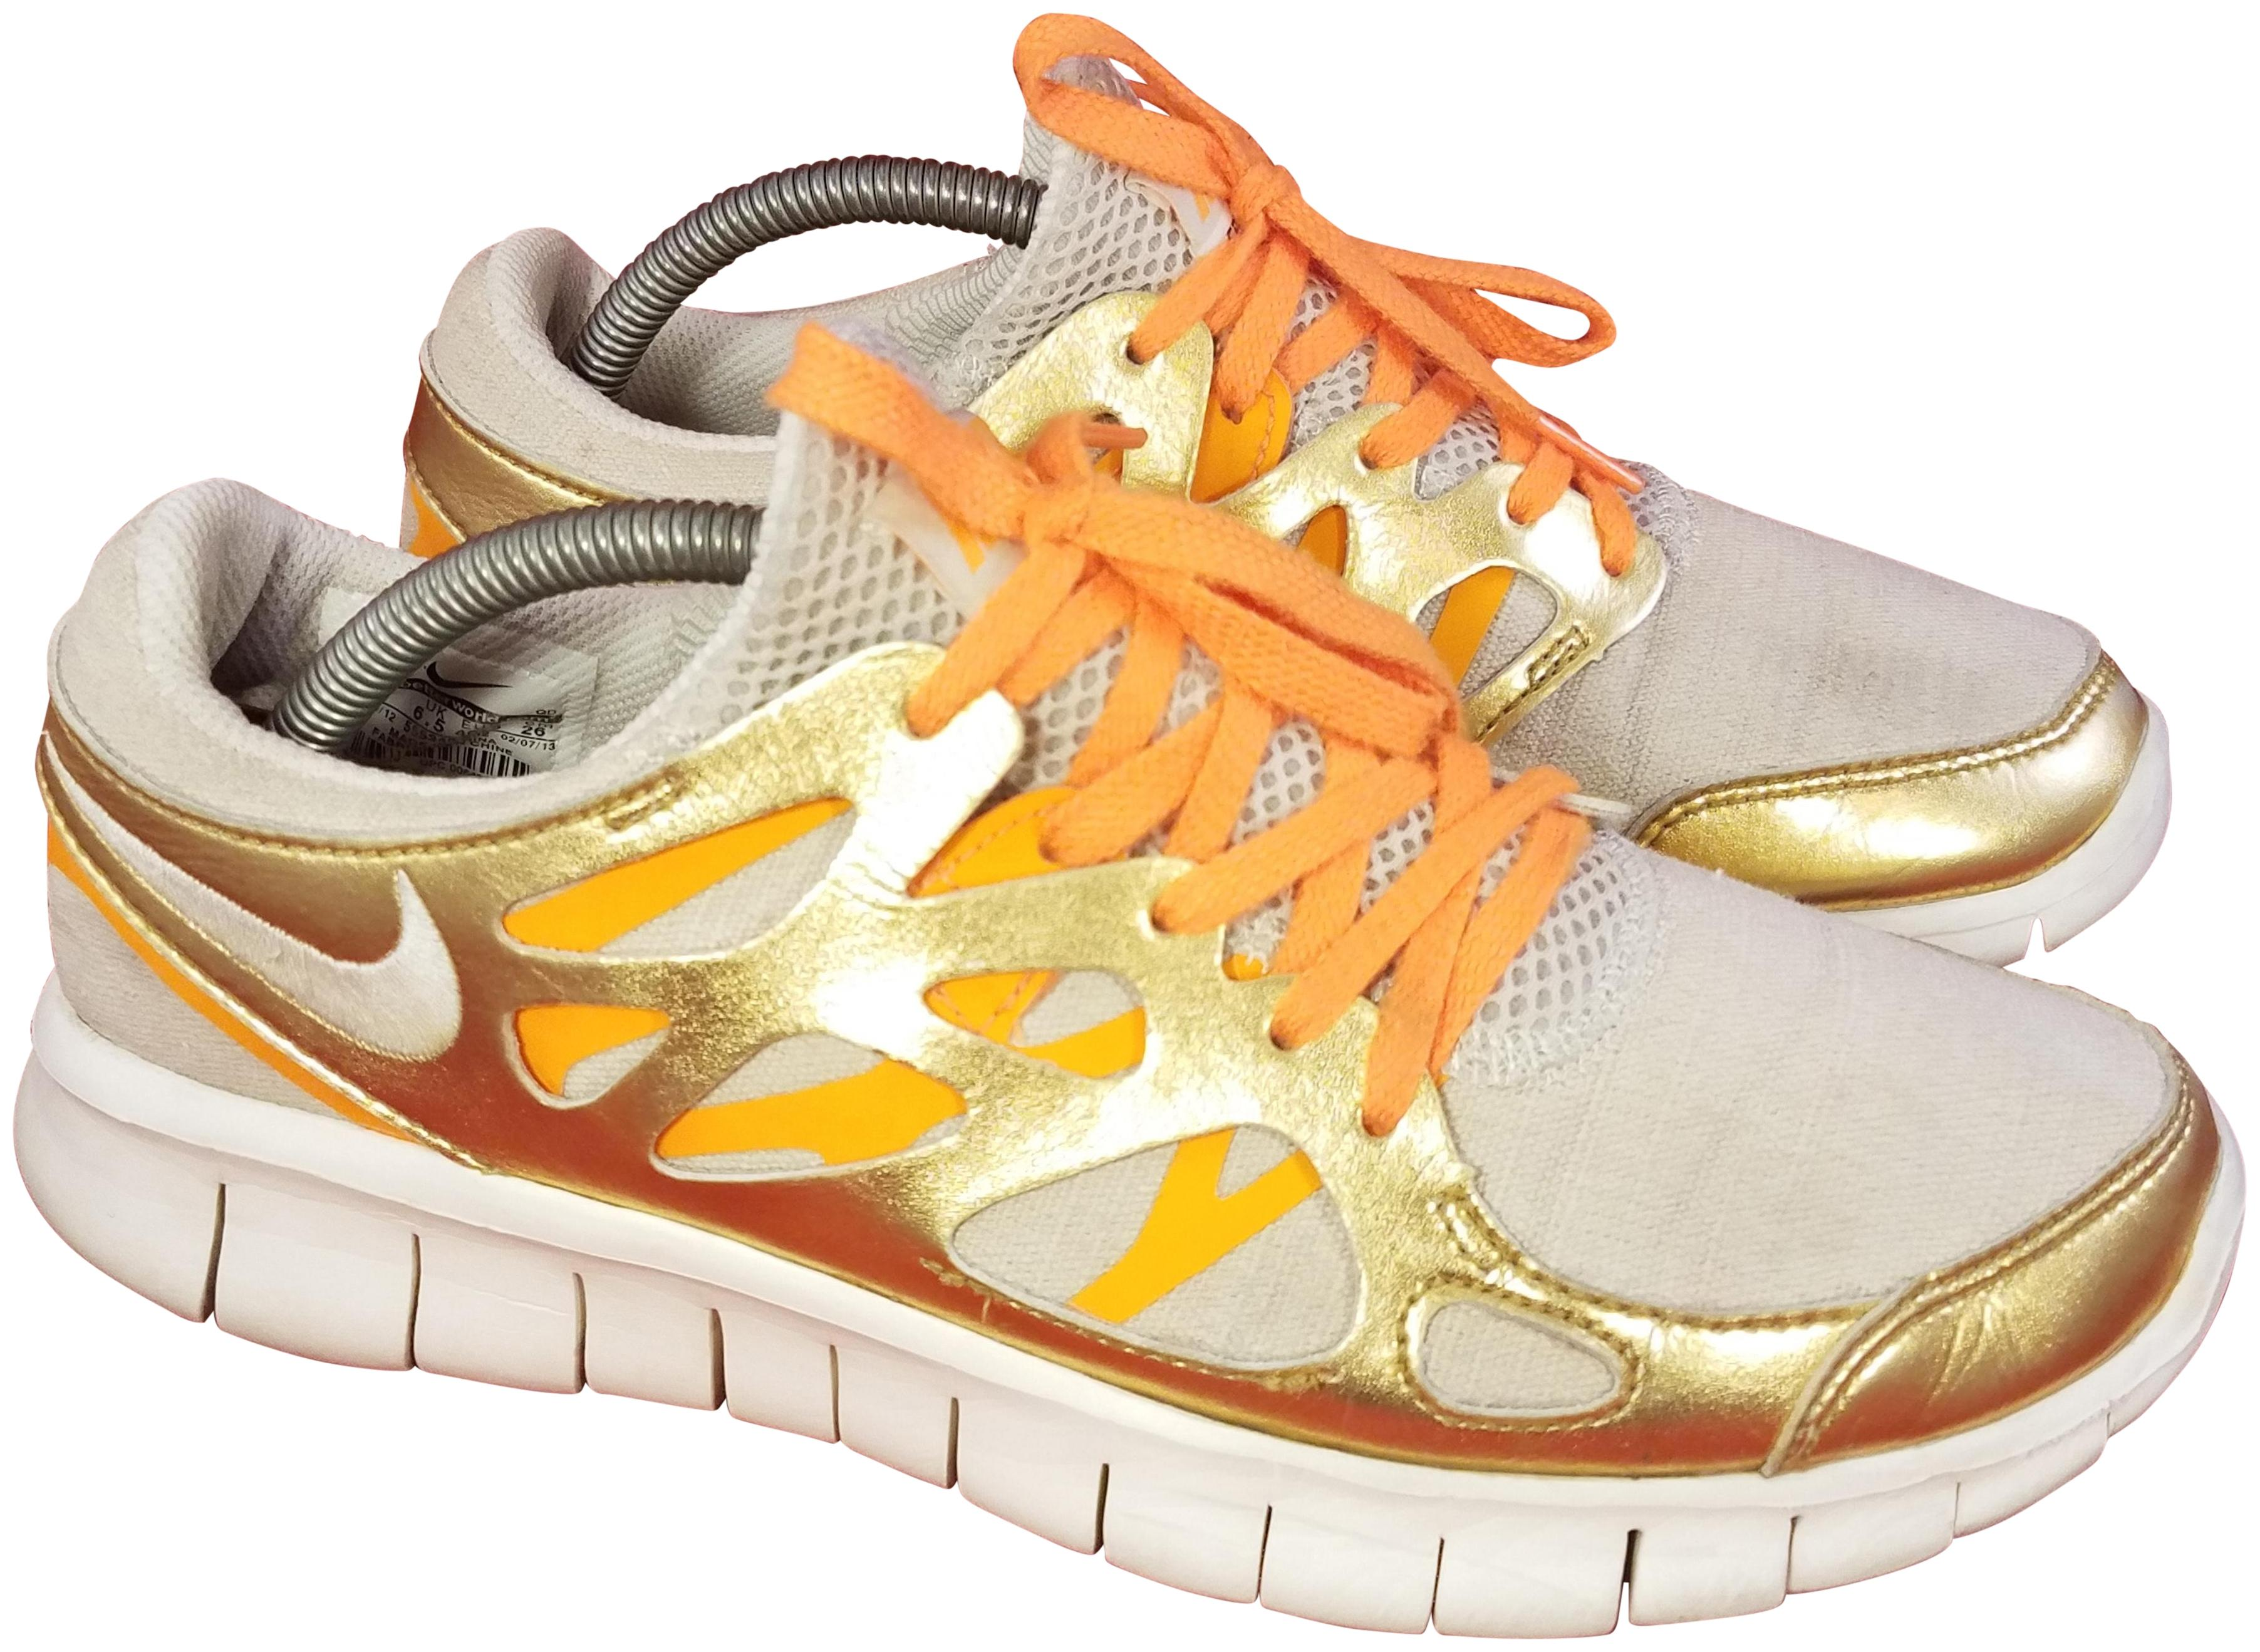 abc6b3b87071 good gray yellow white nike free run 2 mens running shoes 30d87 79a0f  usa nike  gold and beige athletic 4e25a 845fc